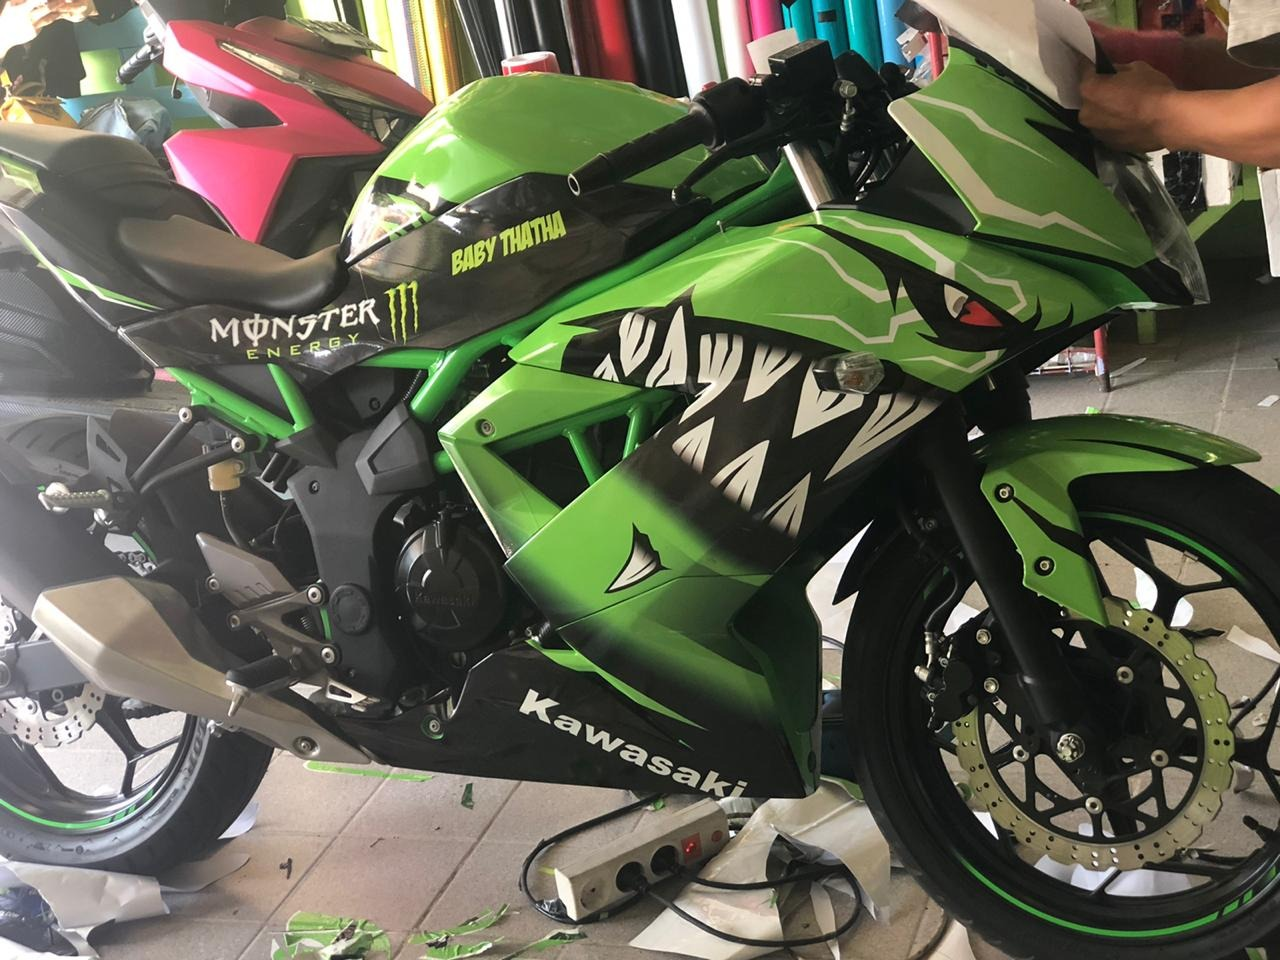 decal NINJA mono maxgraphica cutting sticker sidoarjo